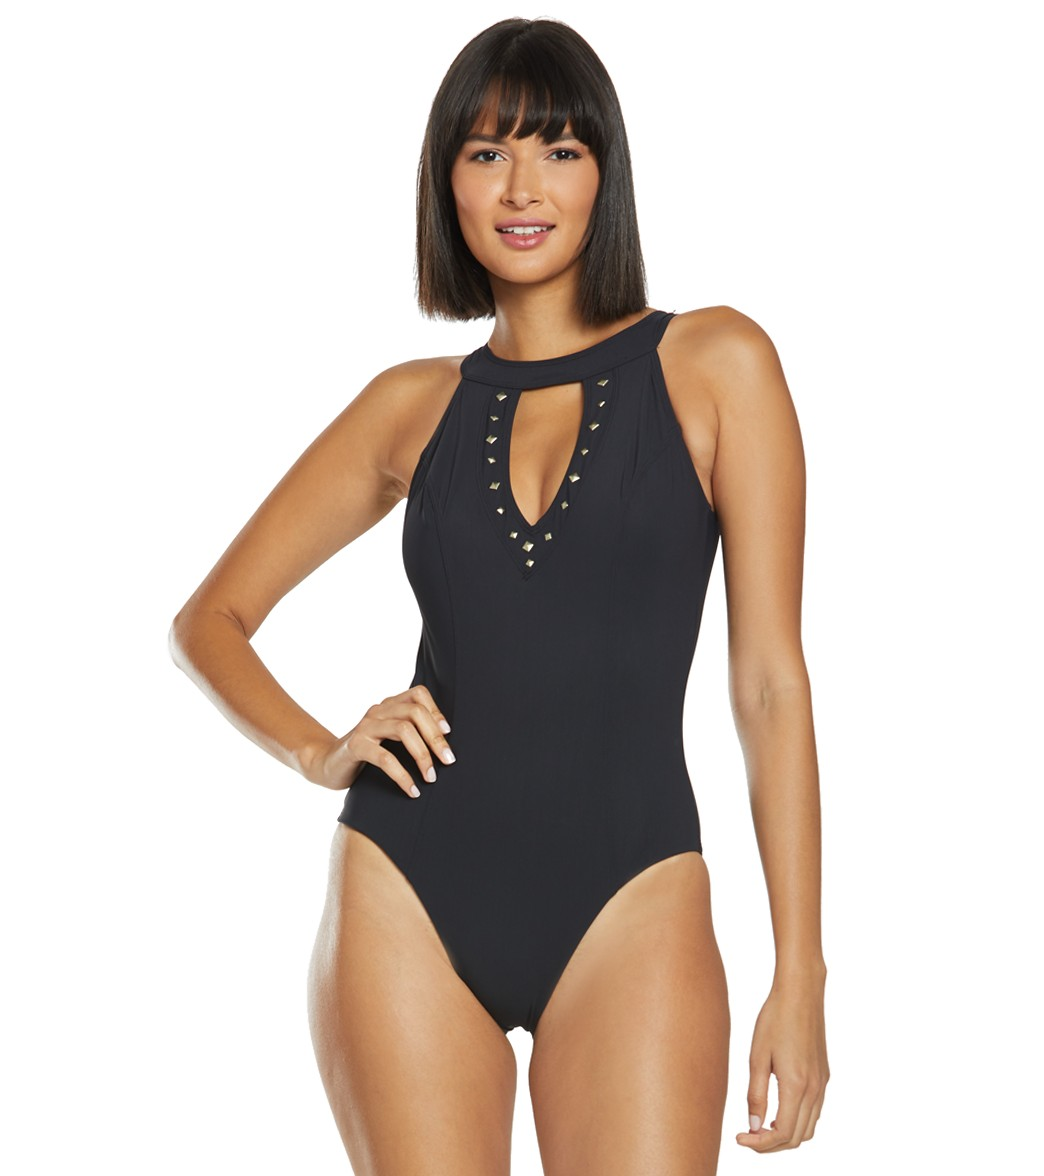 a5c05254b2a Amoressa Freedom Linda High Neck One Piece Swimsuit at SwimOutlet.com -  Free Shipping